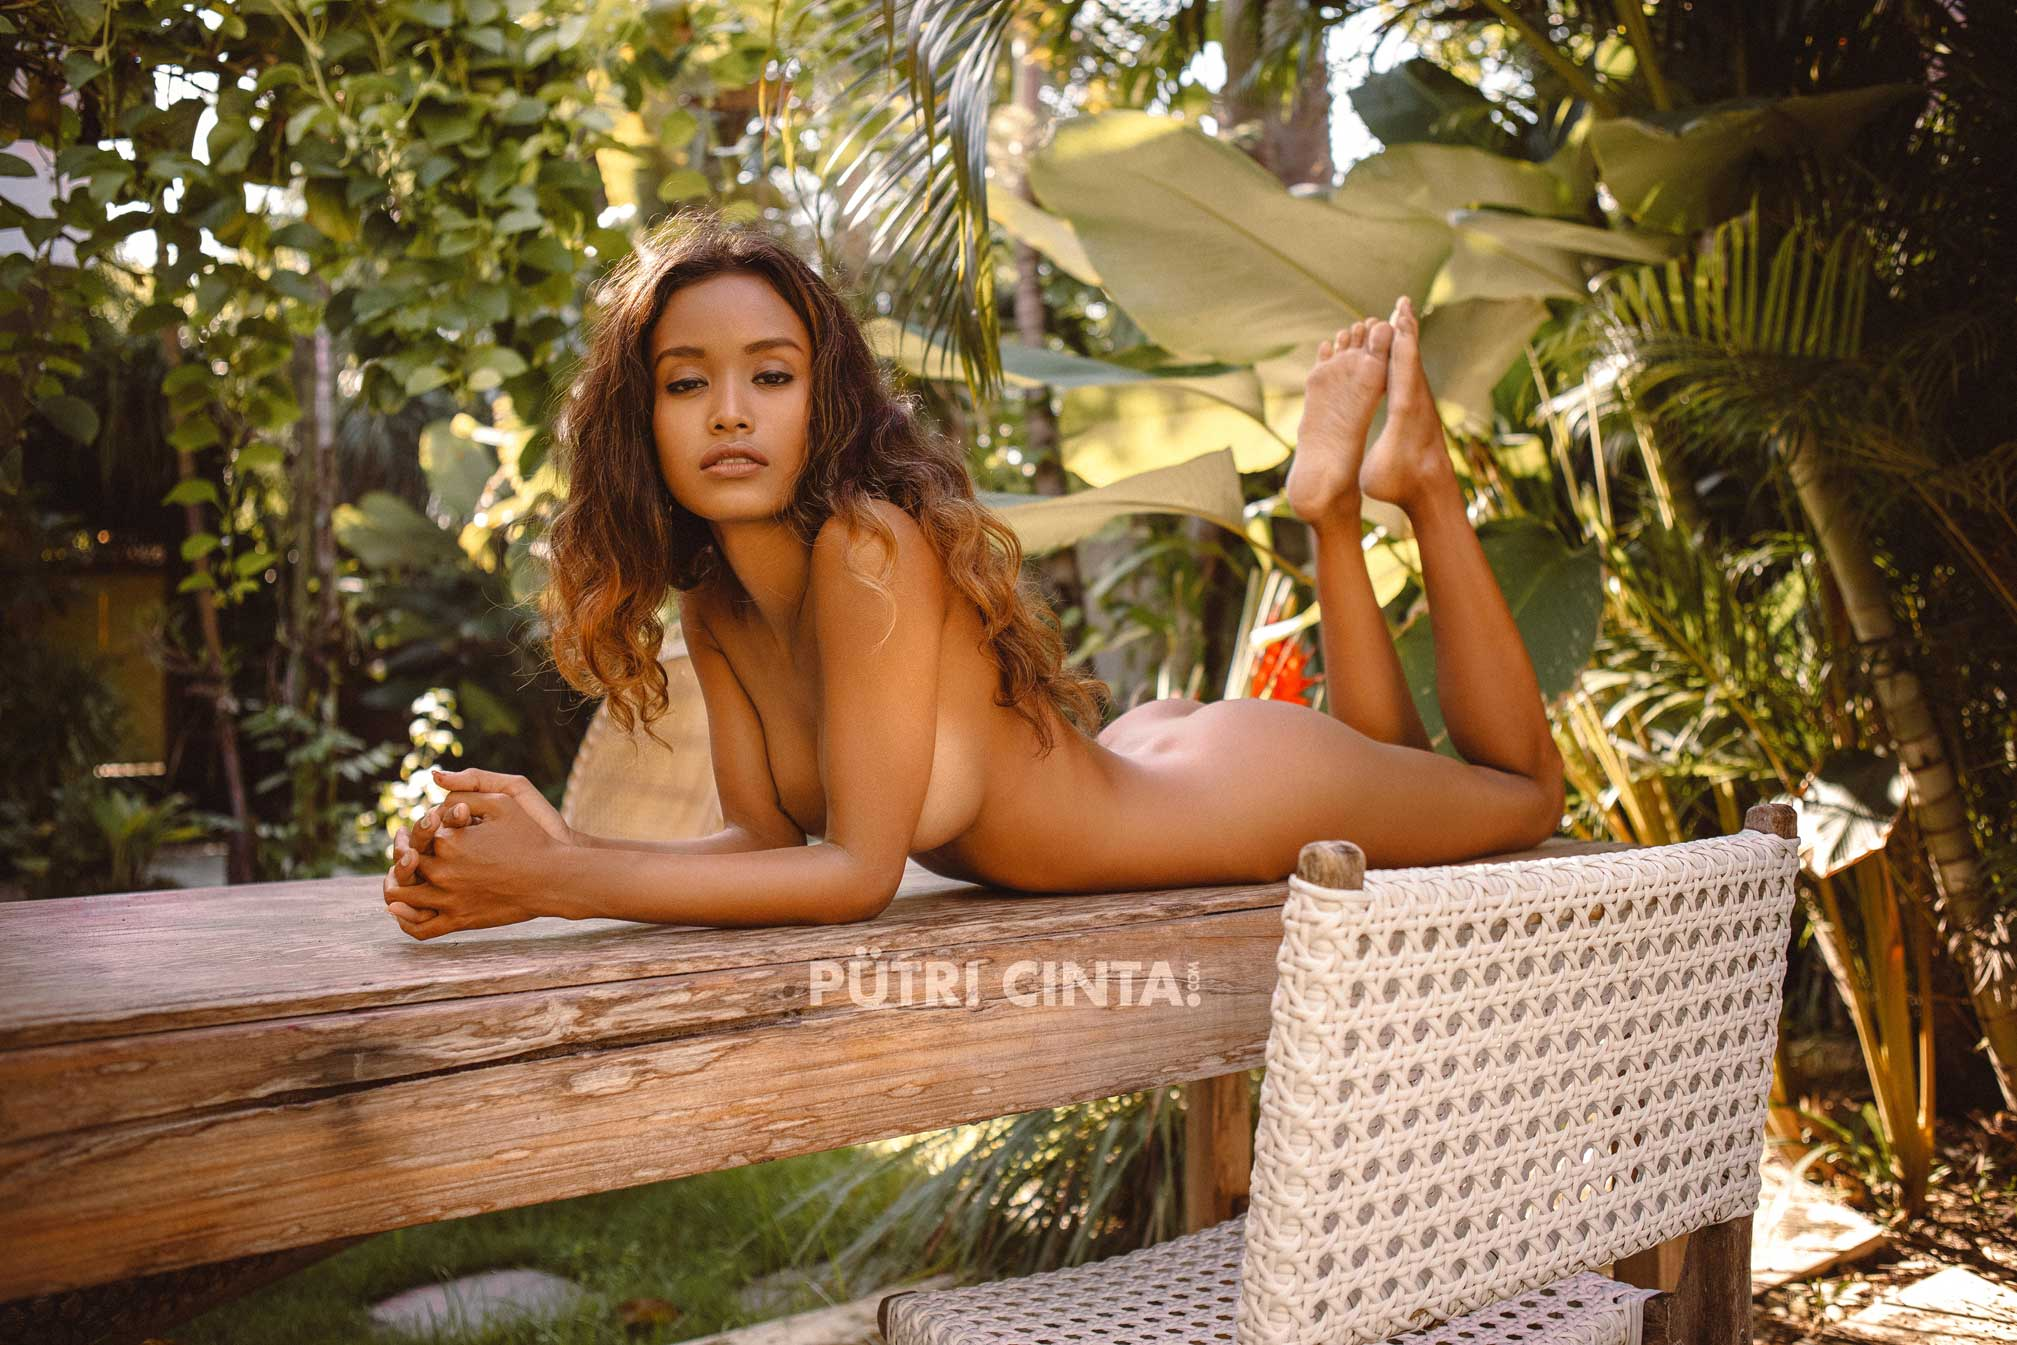 PUTRI-CINTA-010-SUNBATHING-IN-THE-GARDEN-PHOTOSET-21.jpg